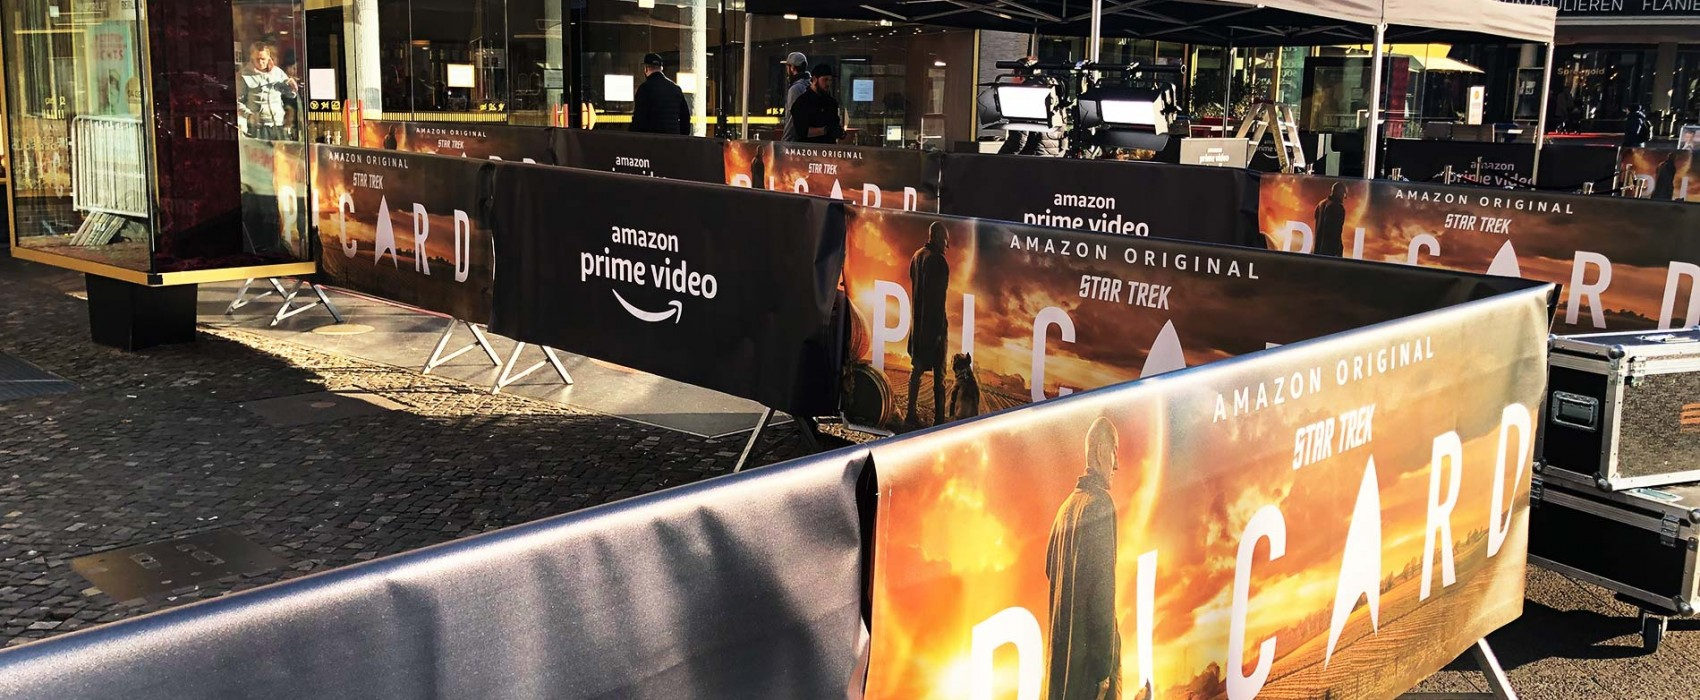 bannerproduktion-amazon-startrek-picard